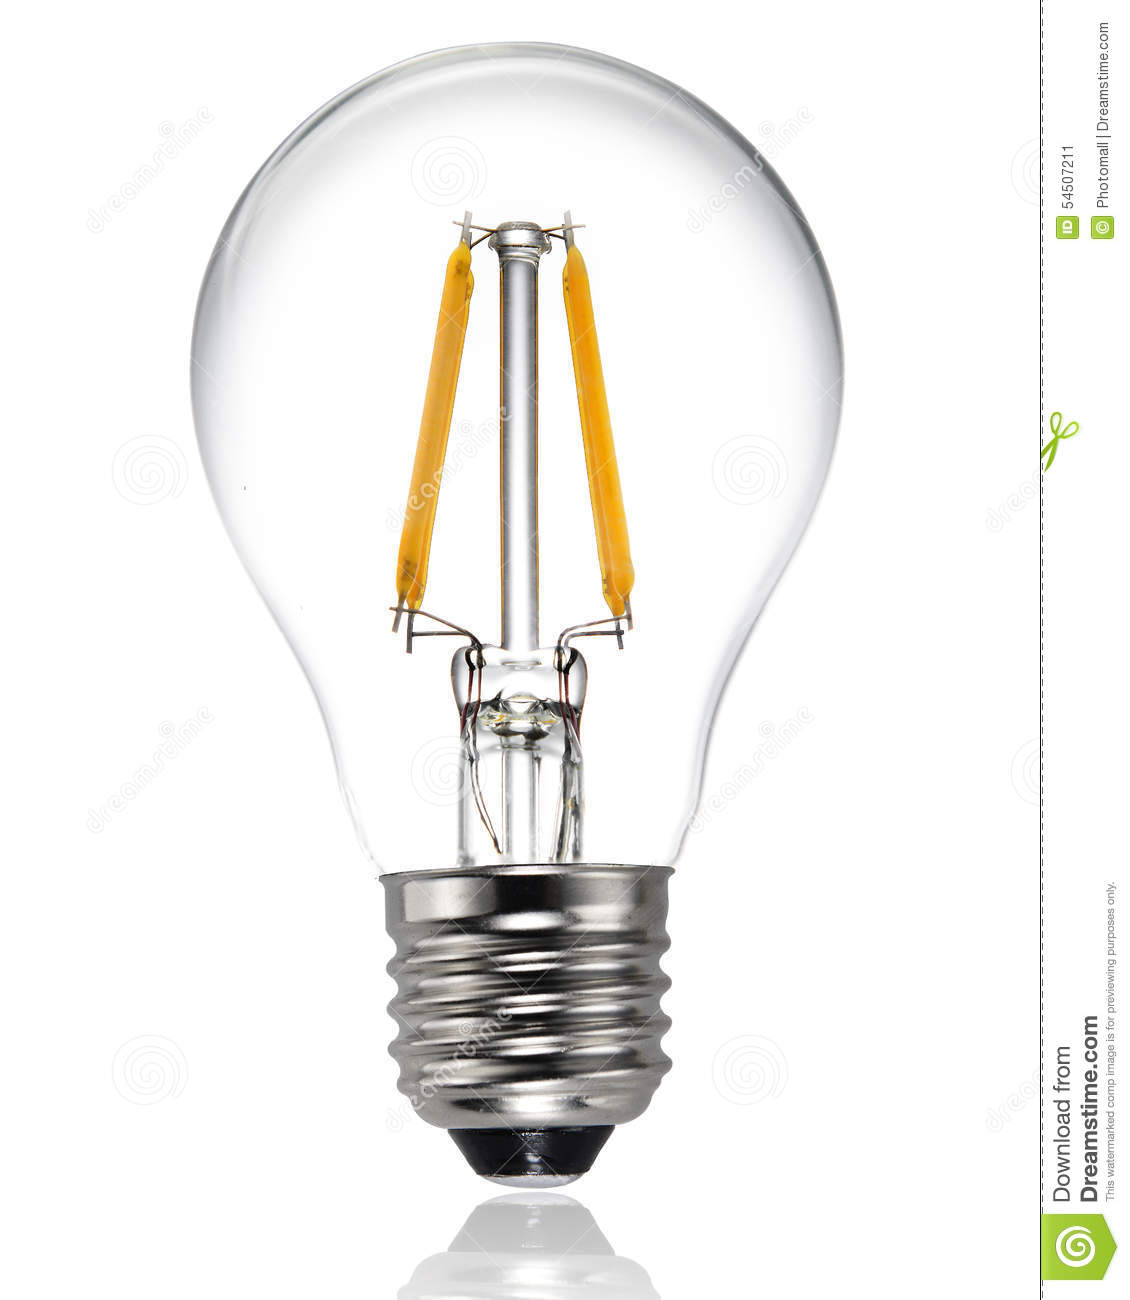 New Type Led Light Bulb Stock Photo